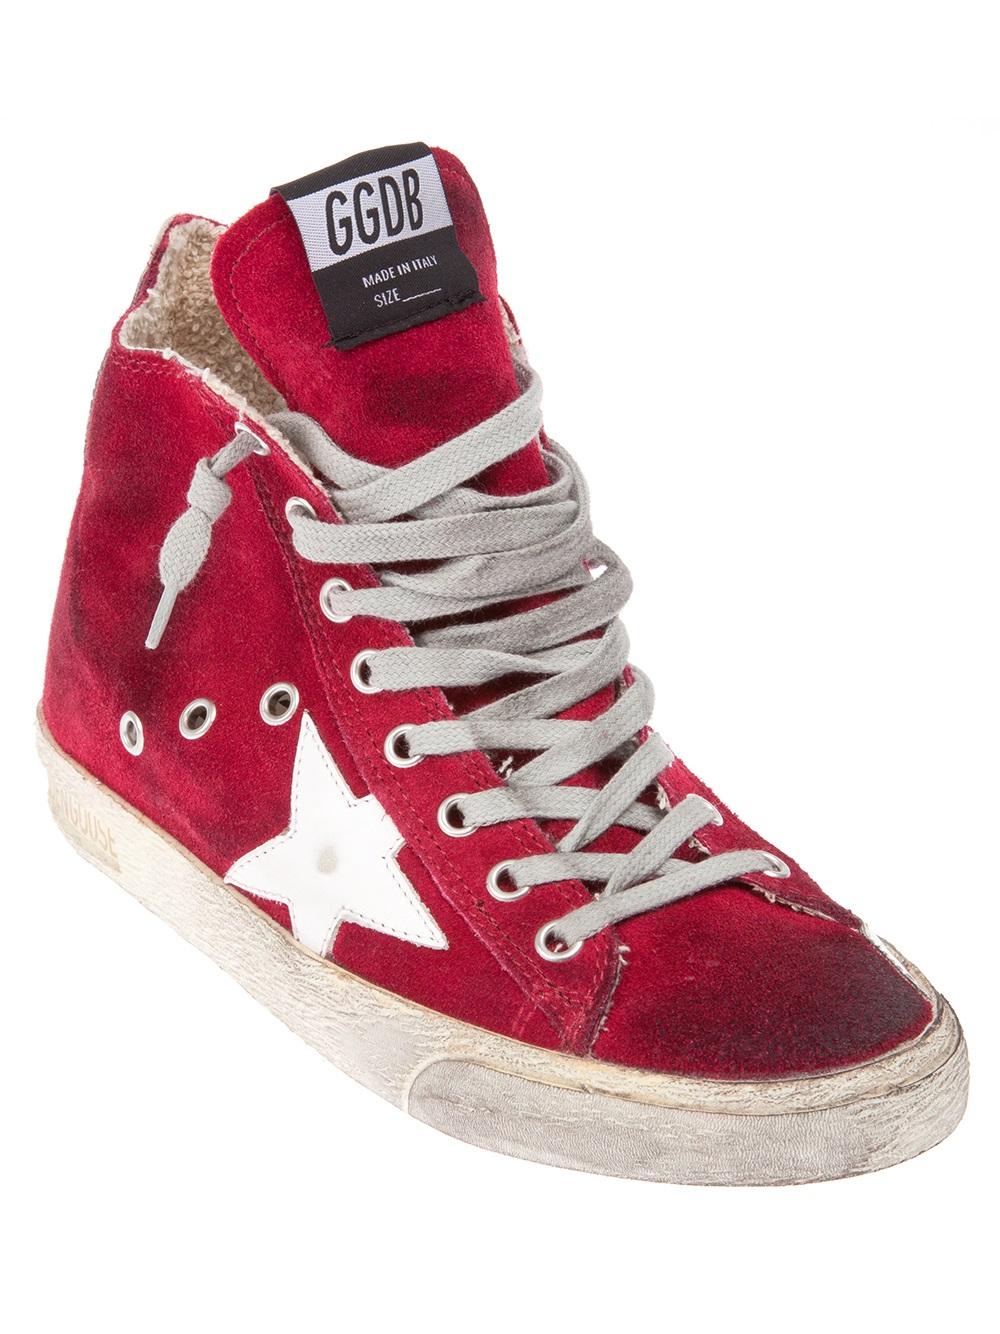 Lyst - Golden Goose Deluxe Brand Francy Hitop Sneakers in Red